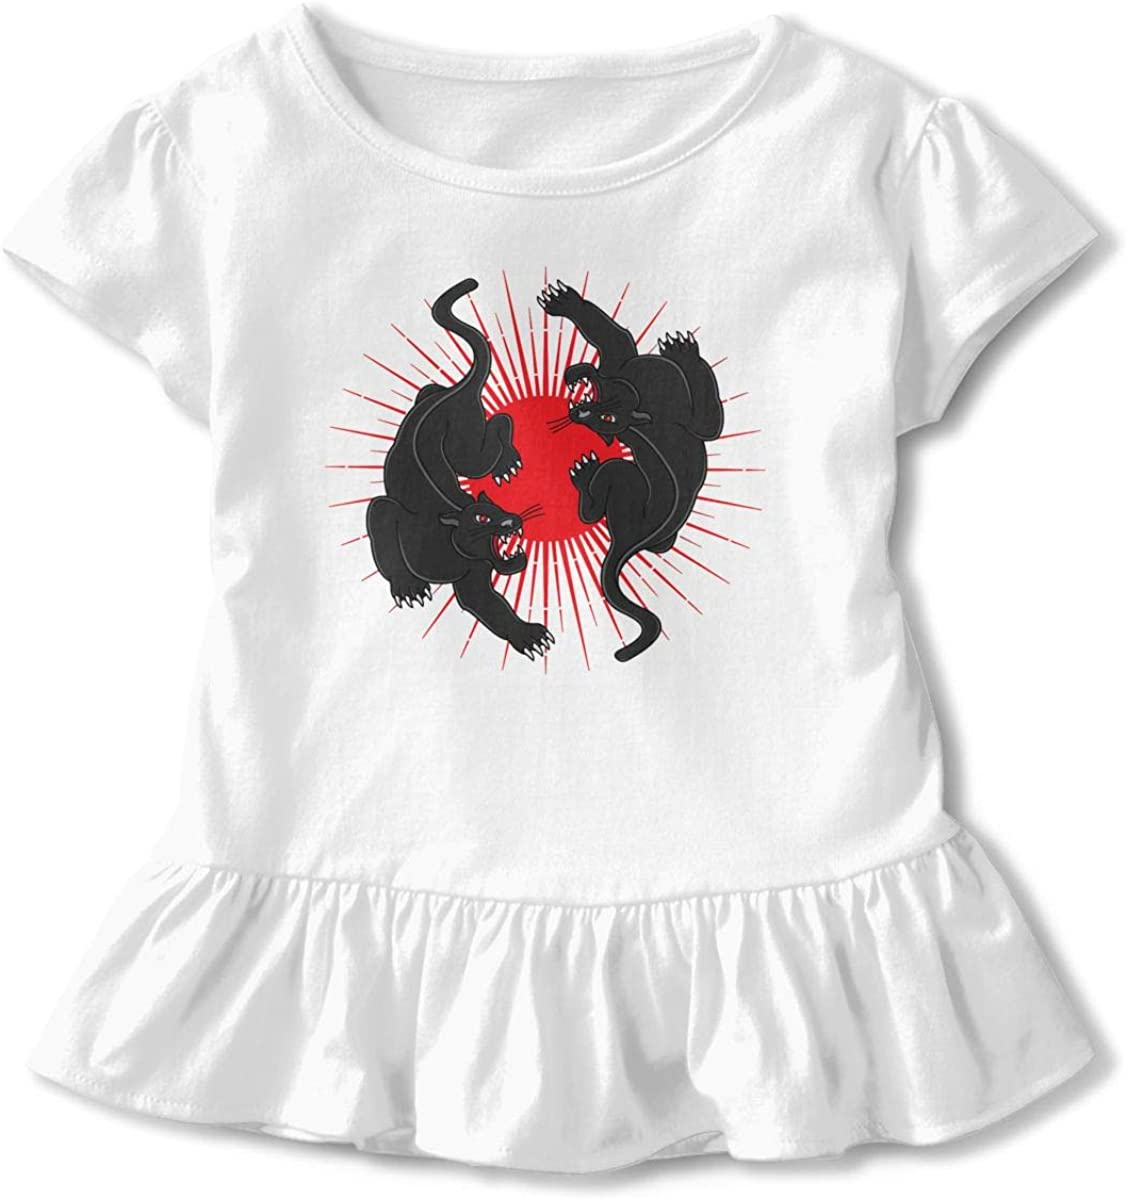 Not Available Retro Panther Tattoo Baby Girl Short Sleeve T-Shirt Flounced Cute Outfits for 2-6 Years Old Baby